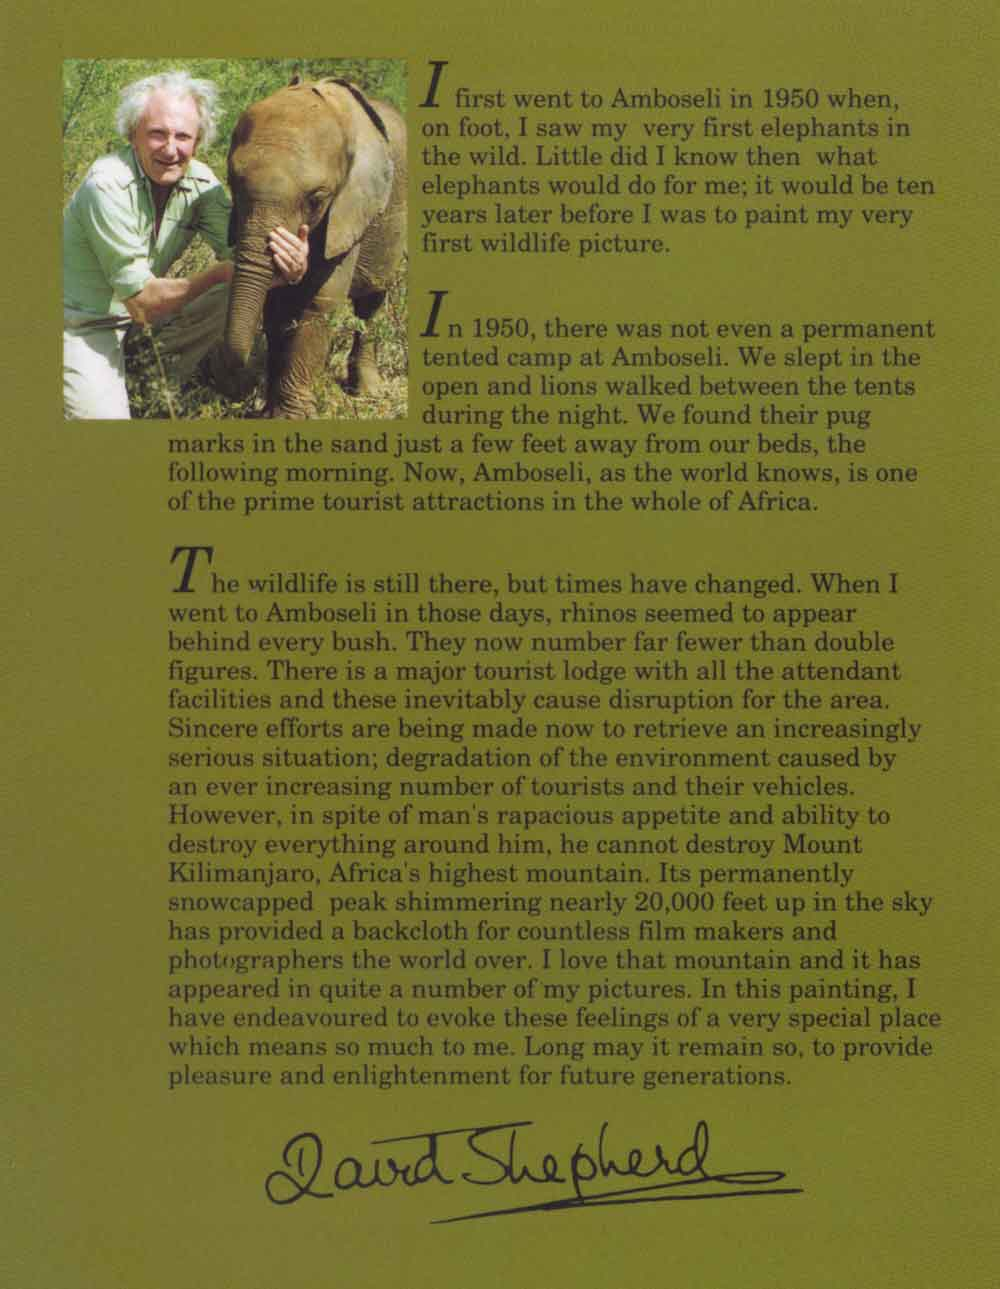 david shepherd amboseli brochure